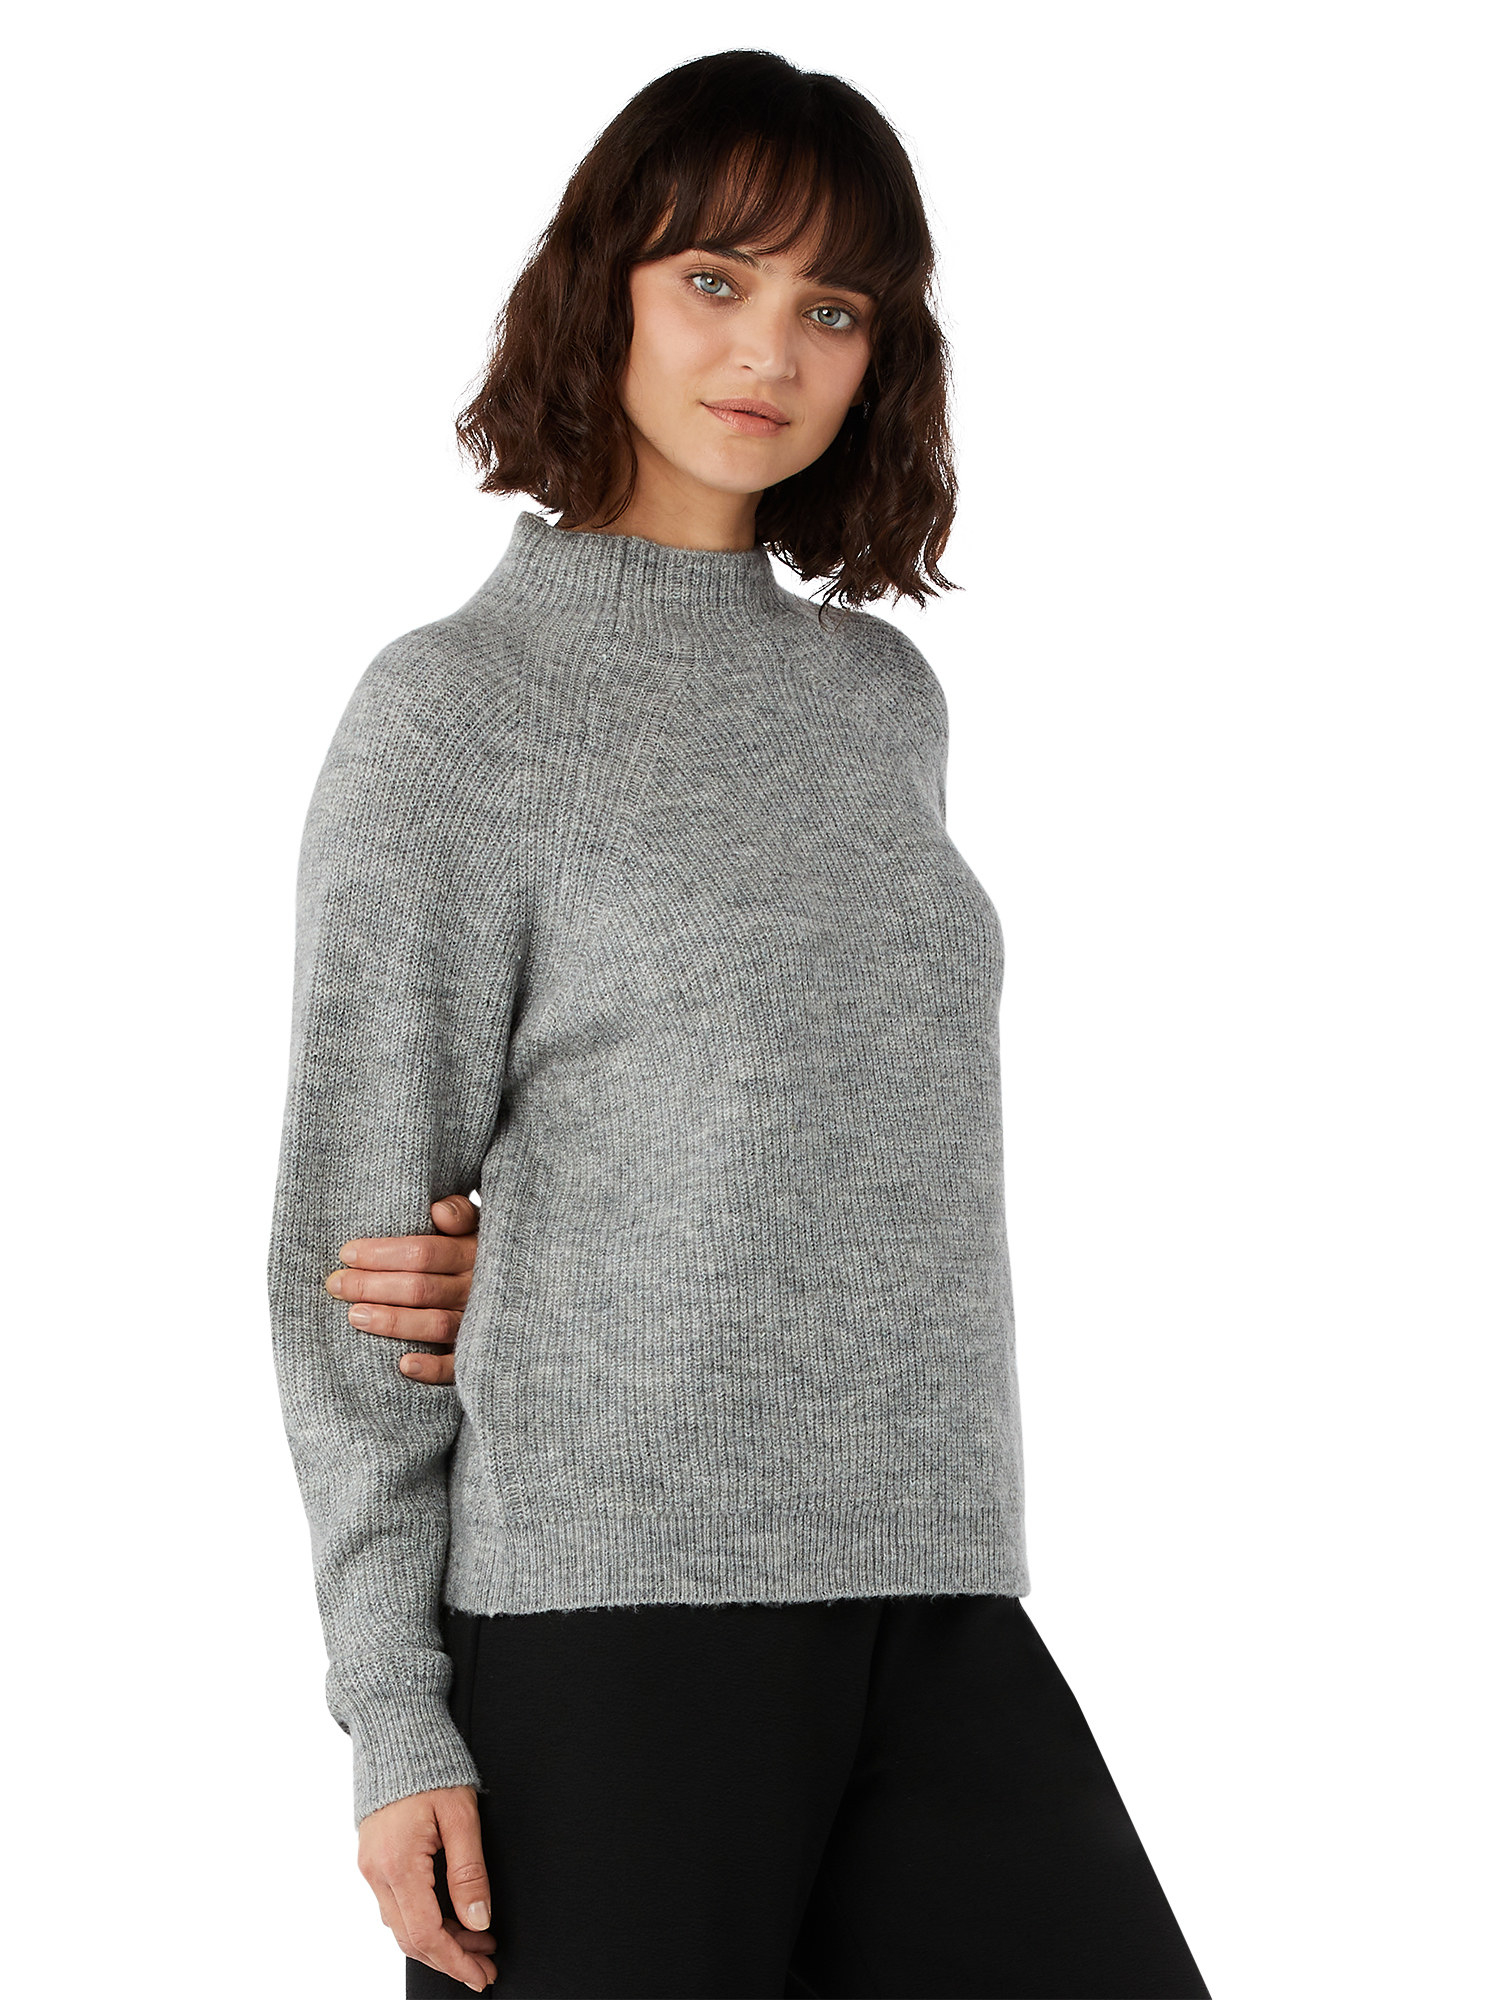 A model in the gray sweater